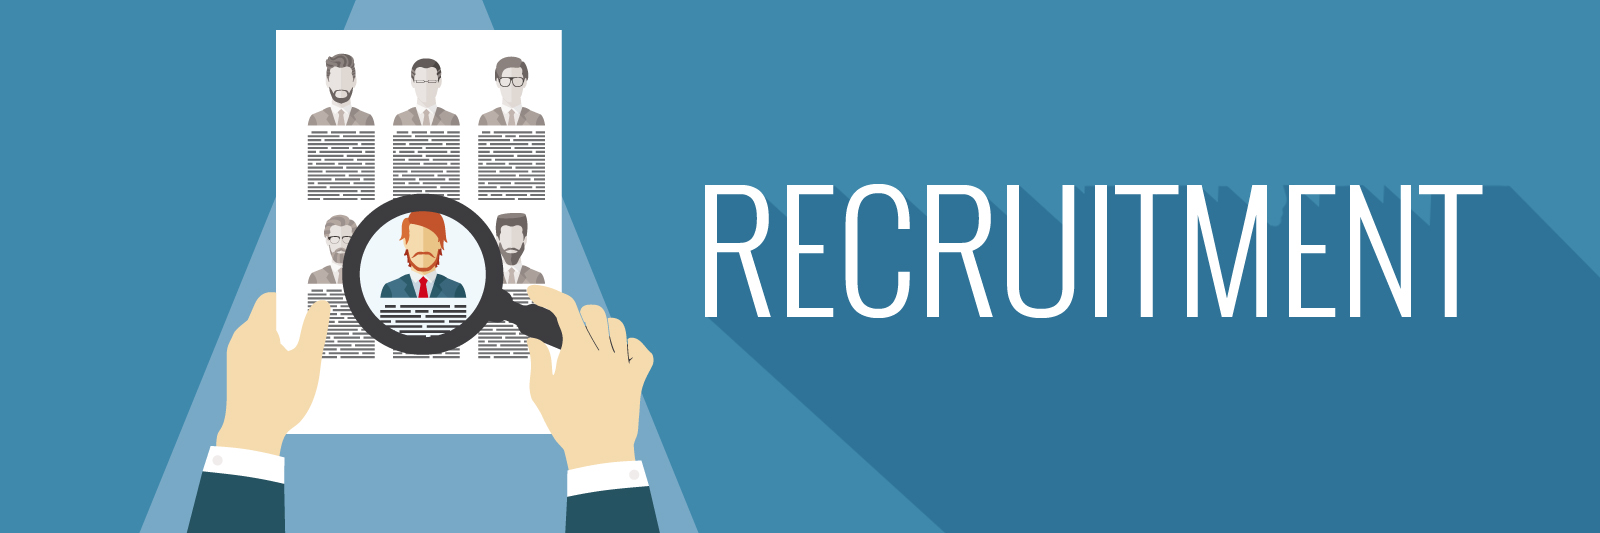 Companies Recruiting Right Now in Nigeria for 2019/2020 : Current